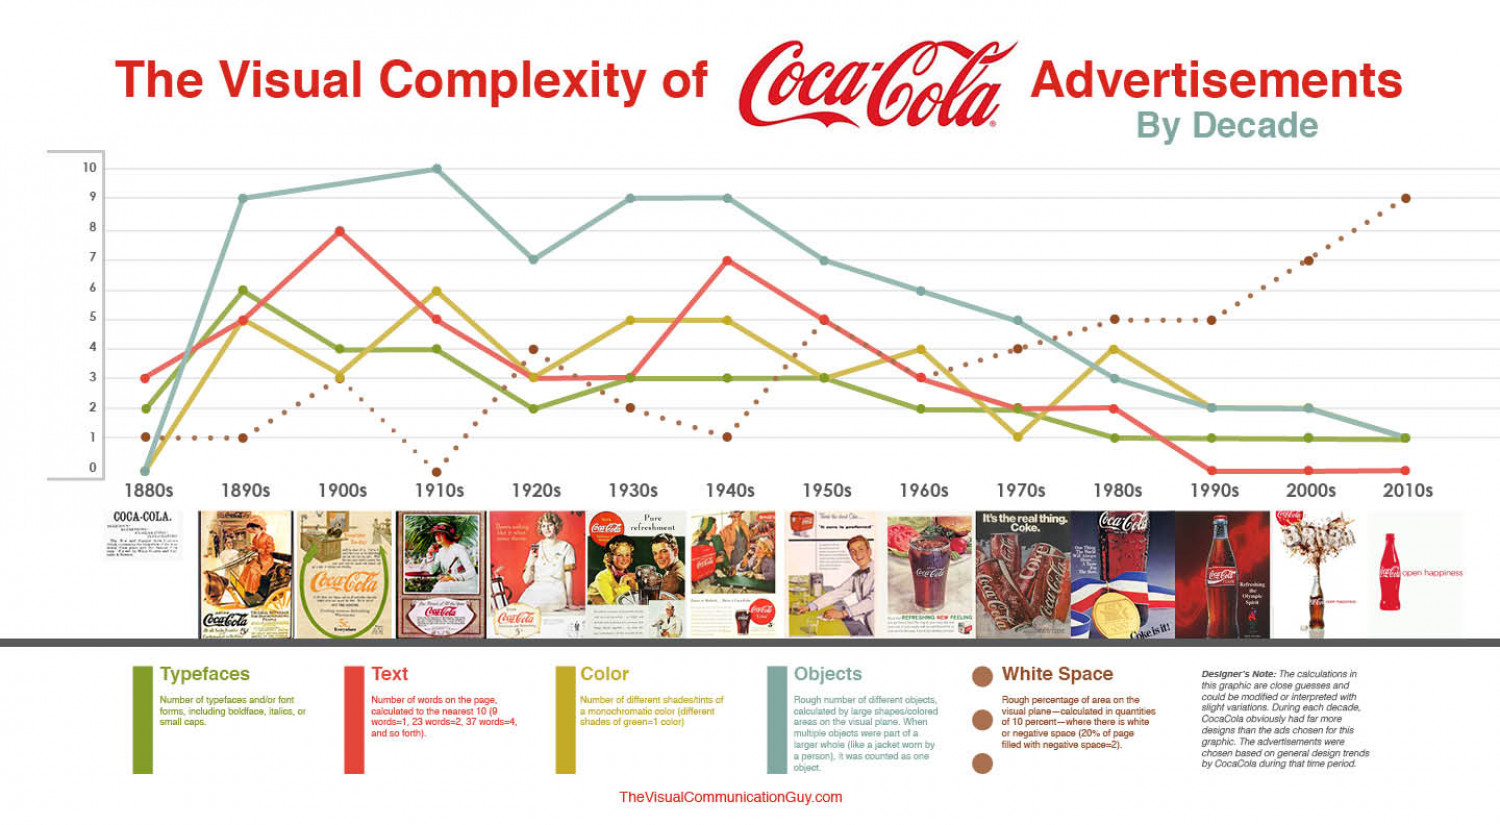 The Visual Complexity of Coca-Cola Advertisements by Decade Infographic